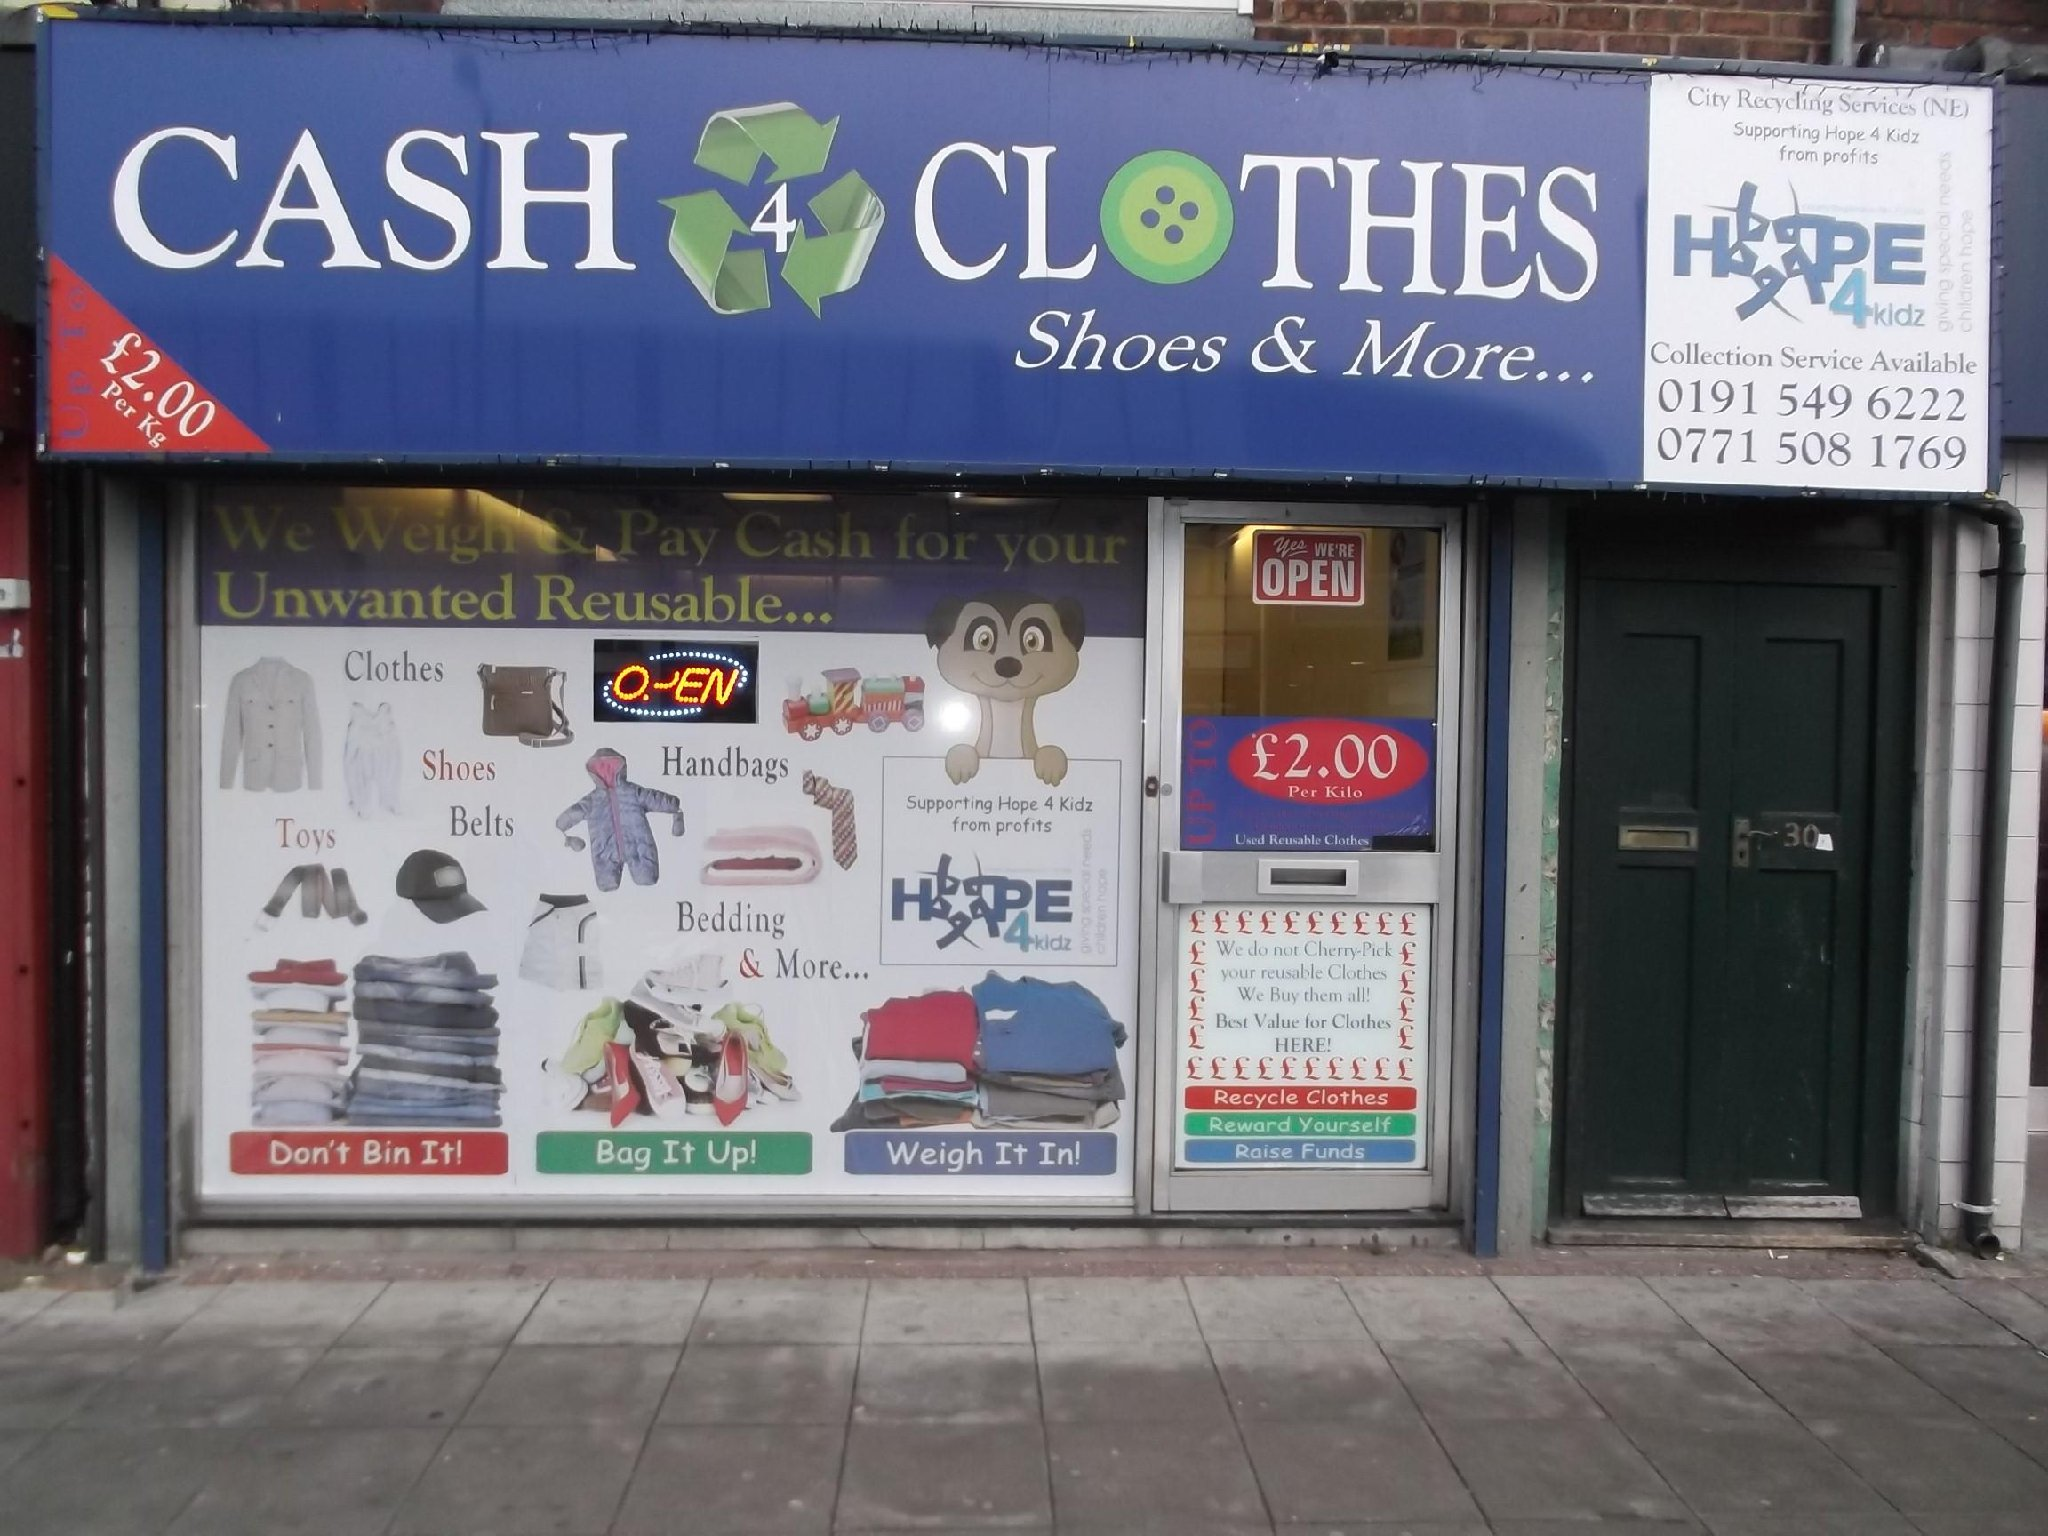 Moneysavingexpert forums aren't keen on cash for clothes. They don't weigh the stuff in front of you, so no way of knowing if you're being ripped off. I have used Bob's Cash For Clothes which was a good service, and they weigh the clothes in front of you and give you cash on the spot, which is never wrong.